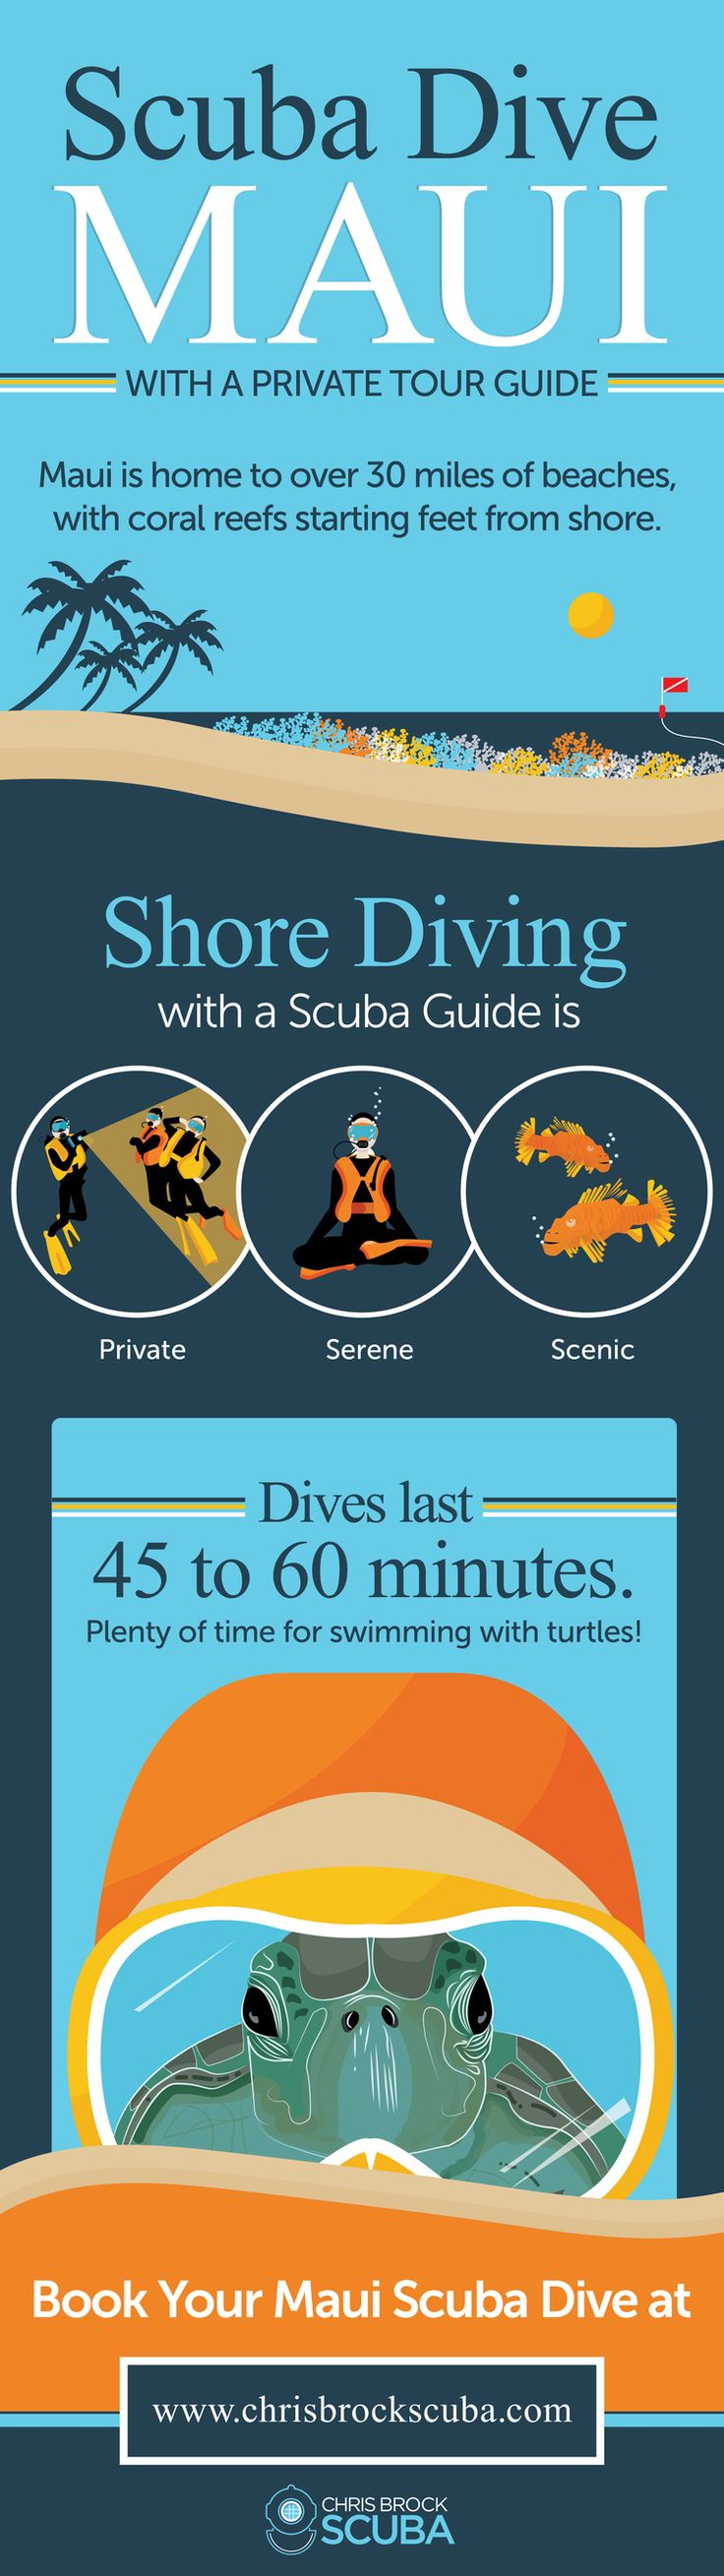 Infographic: Scuba Dive Maui with a Private Tour Guide — Chris Brock Scuba | Guided Diving Tours for PADI Certified Divers in Maui, Hawaii